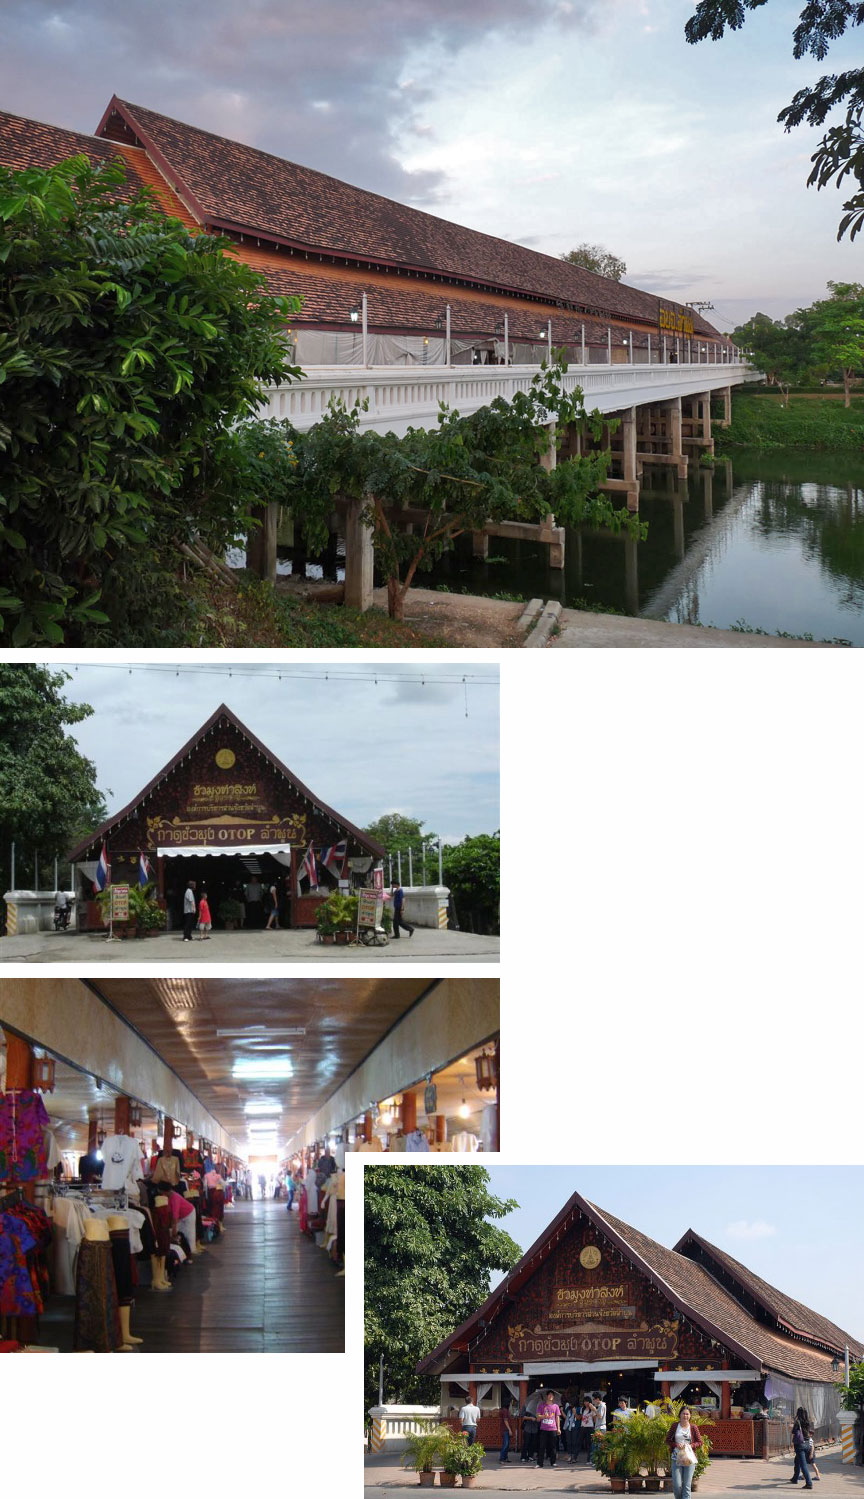 Lamphun covered bridge